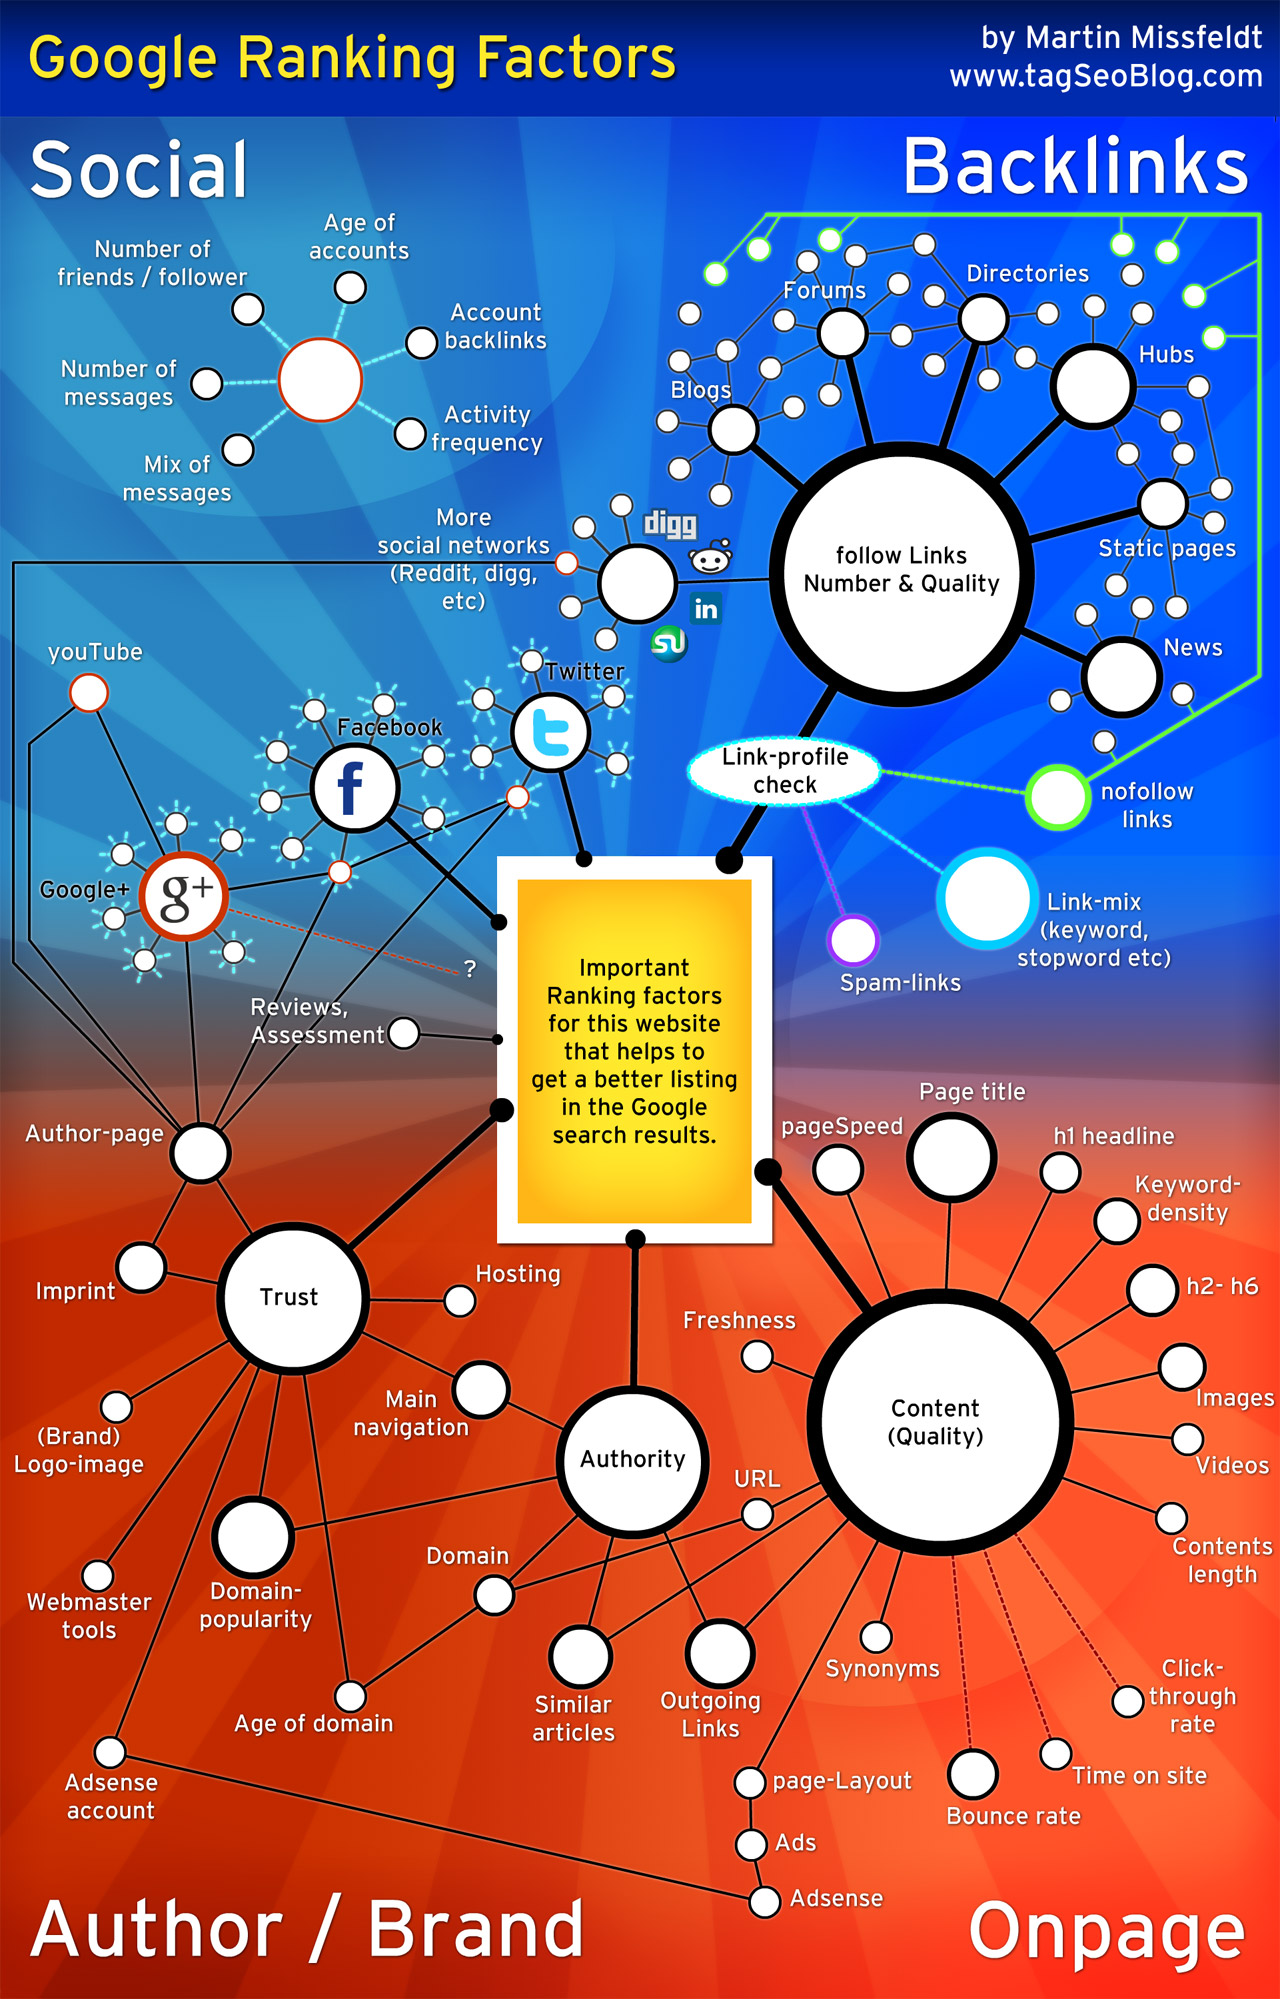 Google Ranking Factors Infographic